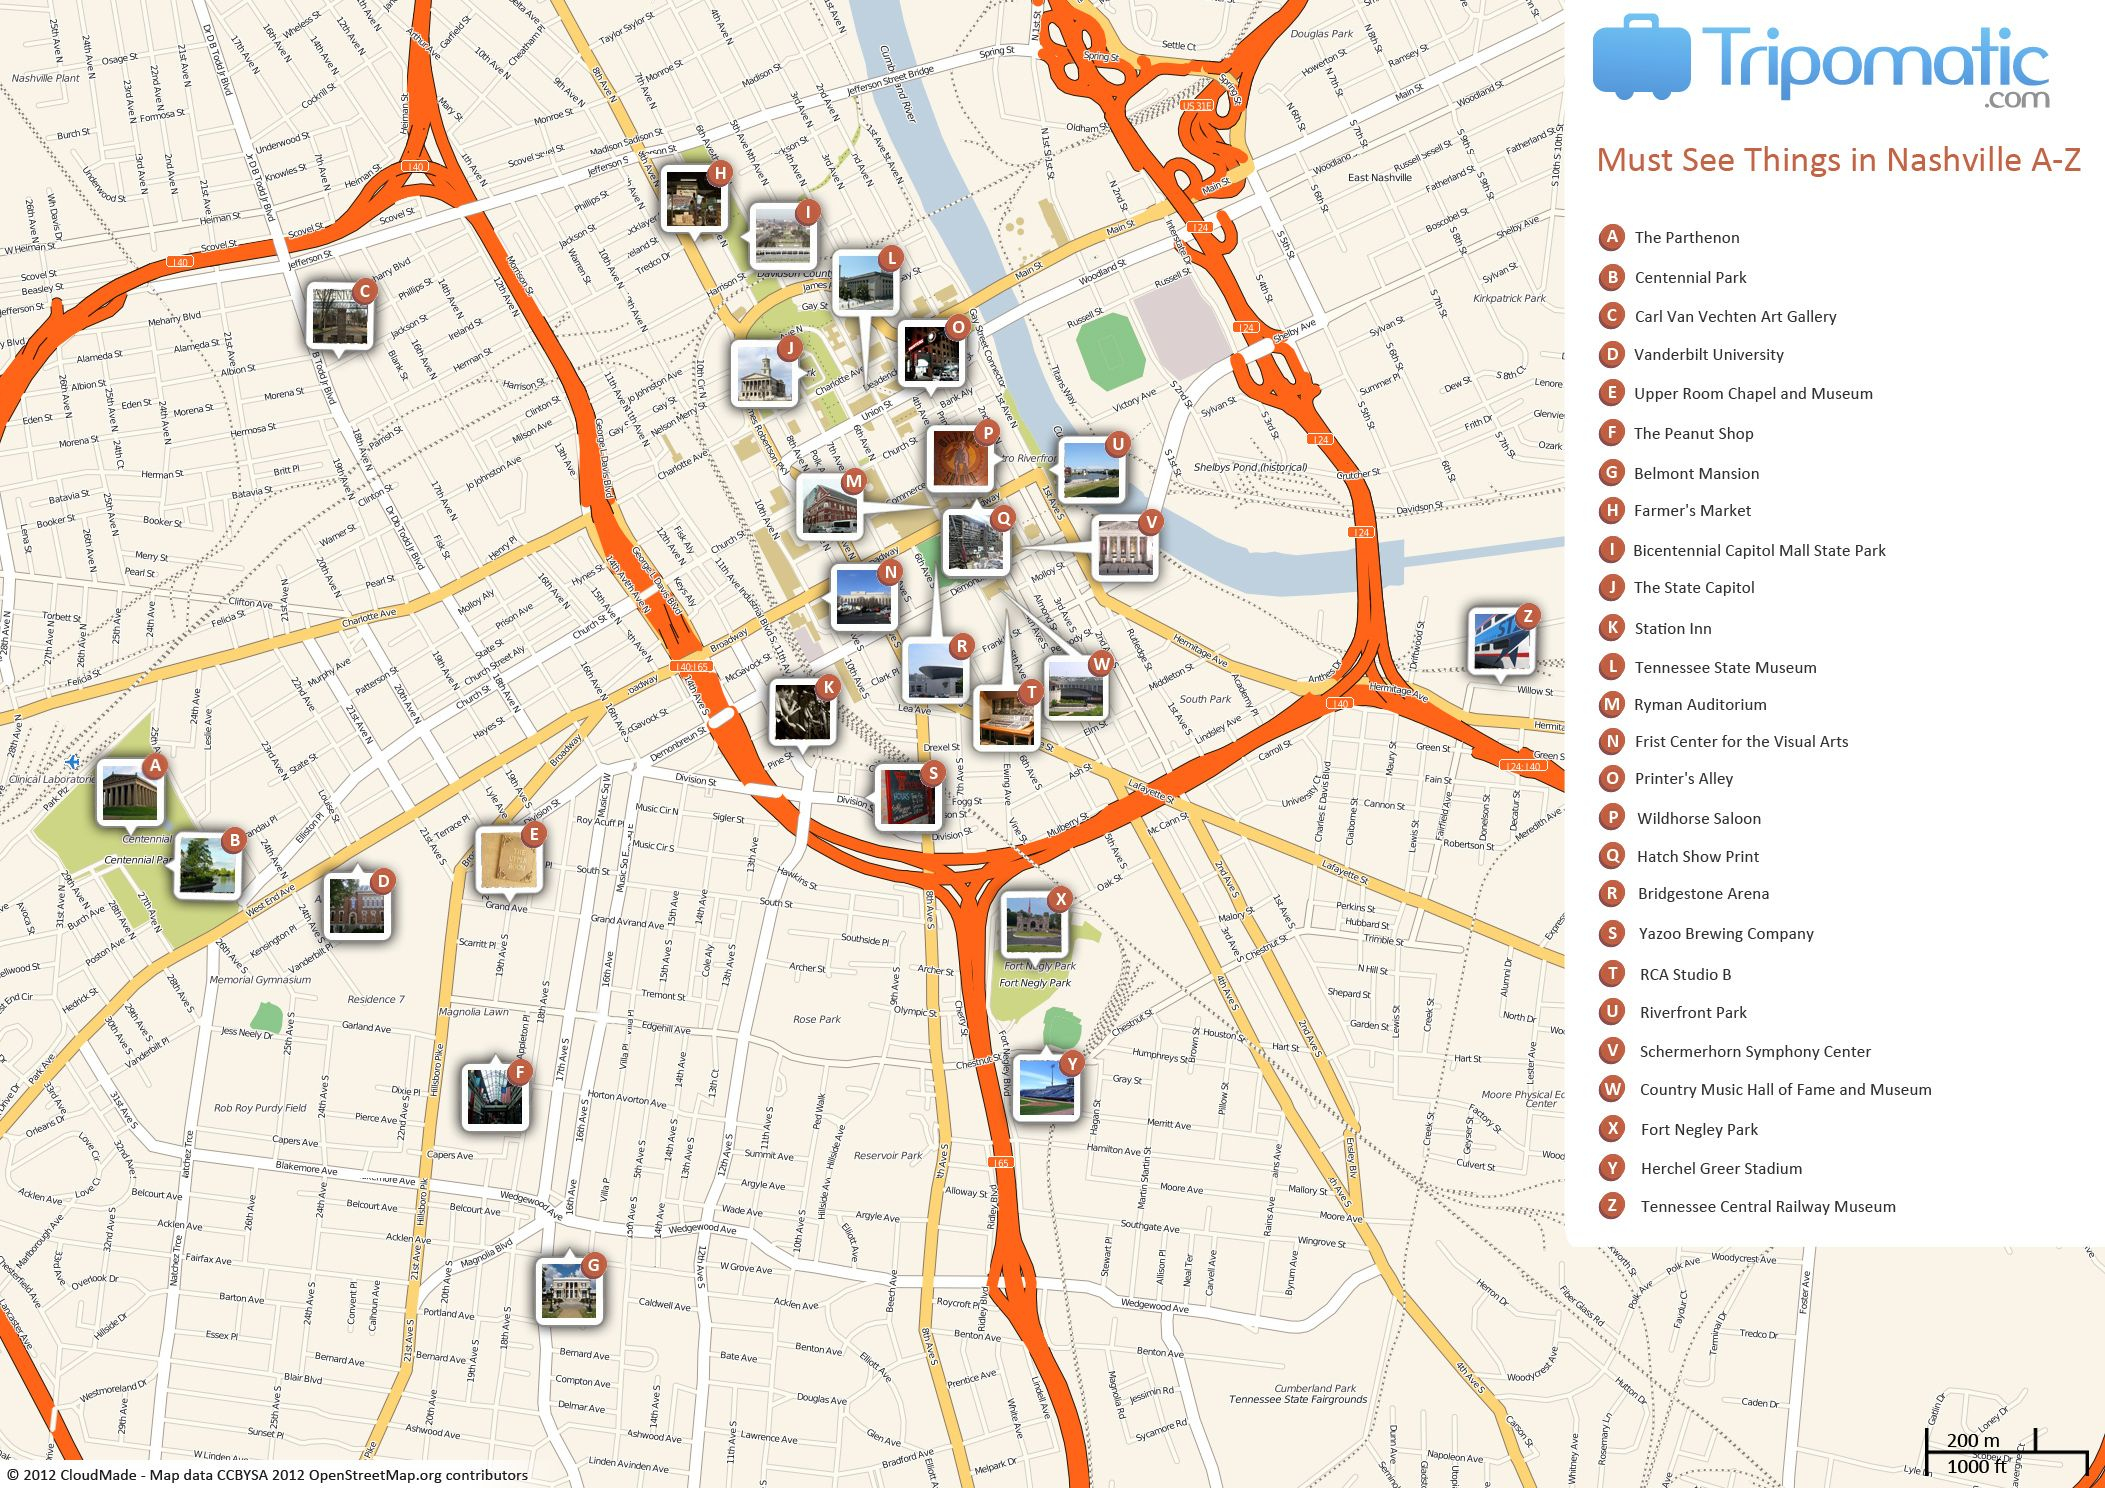 Nashville Printable Tourist Map | Free Tourist Maps ✈ | Nashville - Printable Map Of Nashville